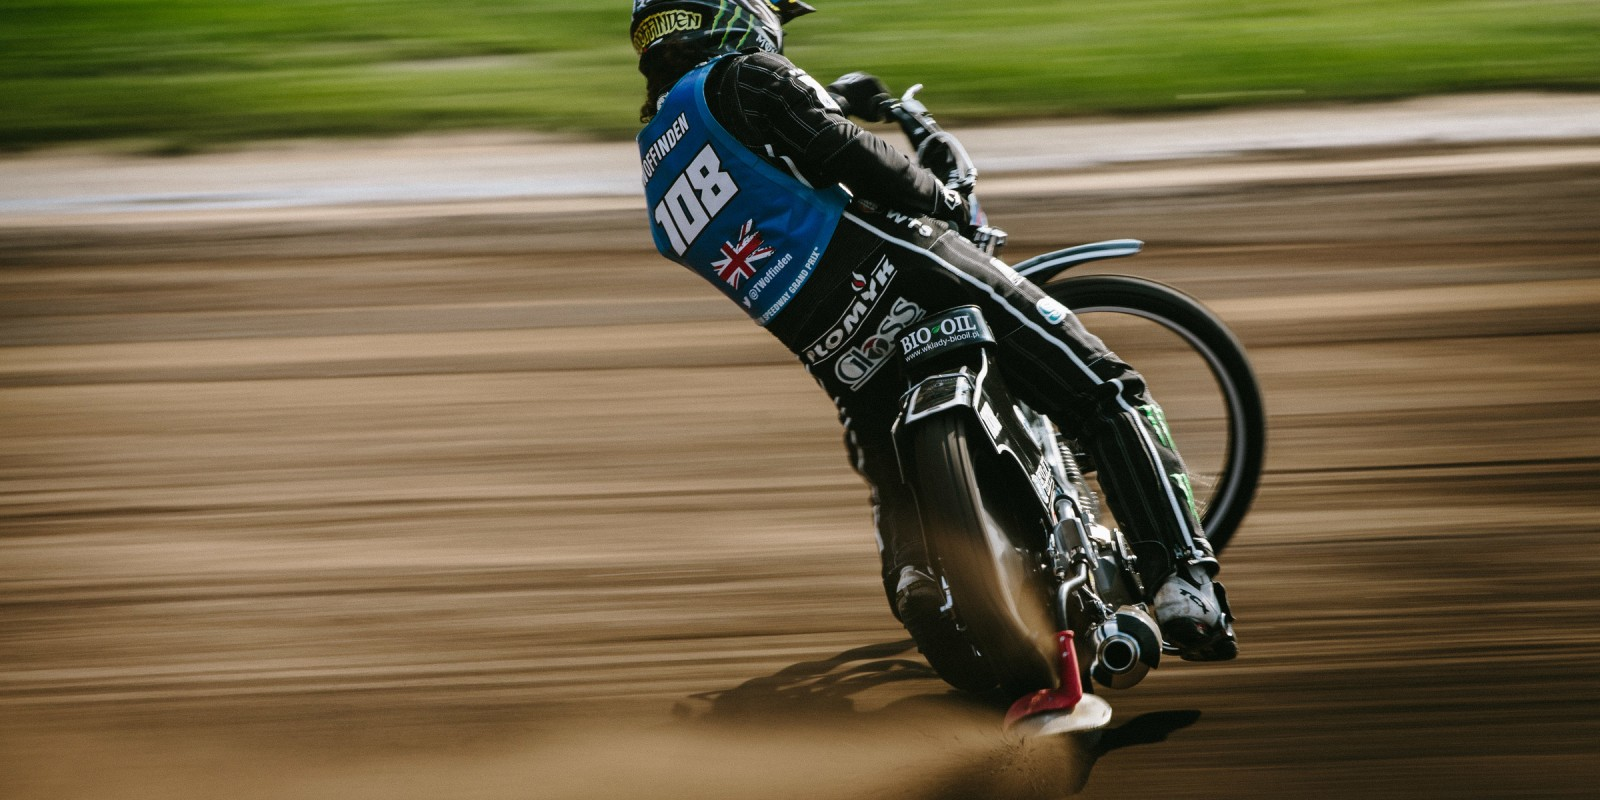 Images from practice of the 2016 Czech Republic Speedway Grand Prix